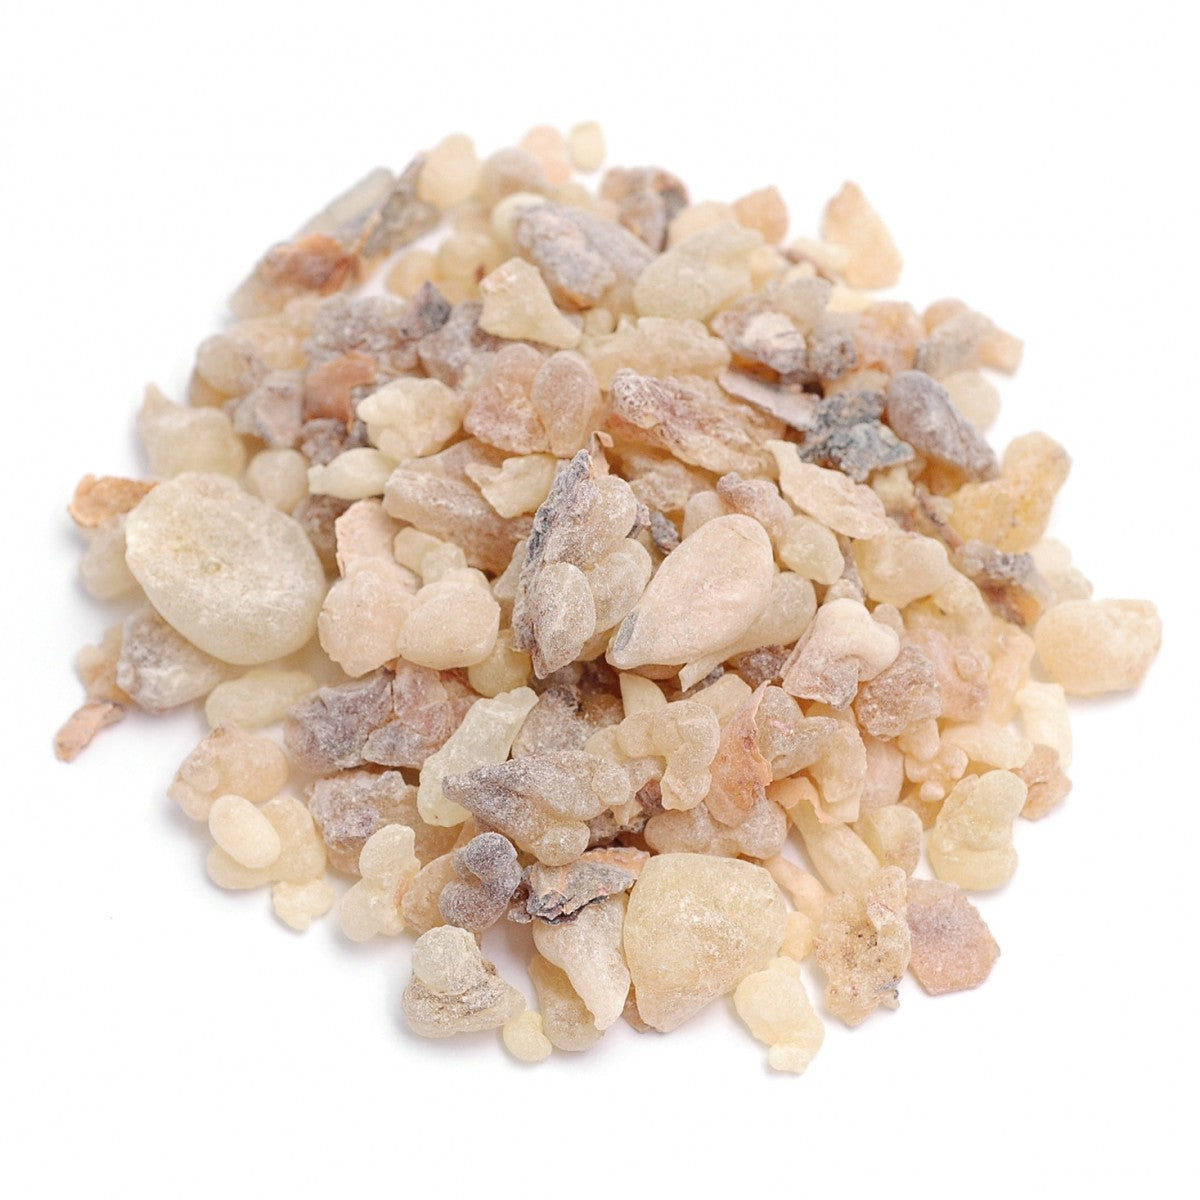 All Things Being Eco - Bulk Frankincense Granules Zero Waste Chilliwack